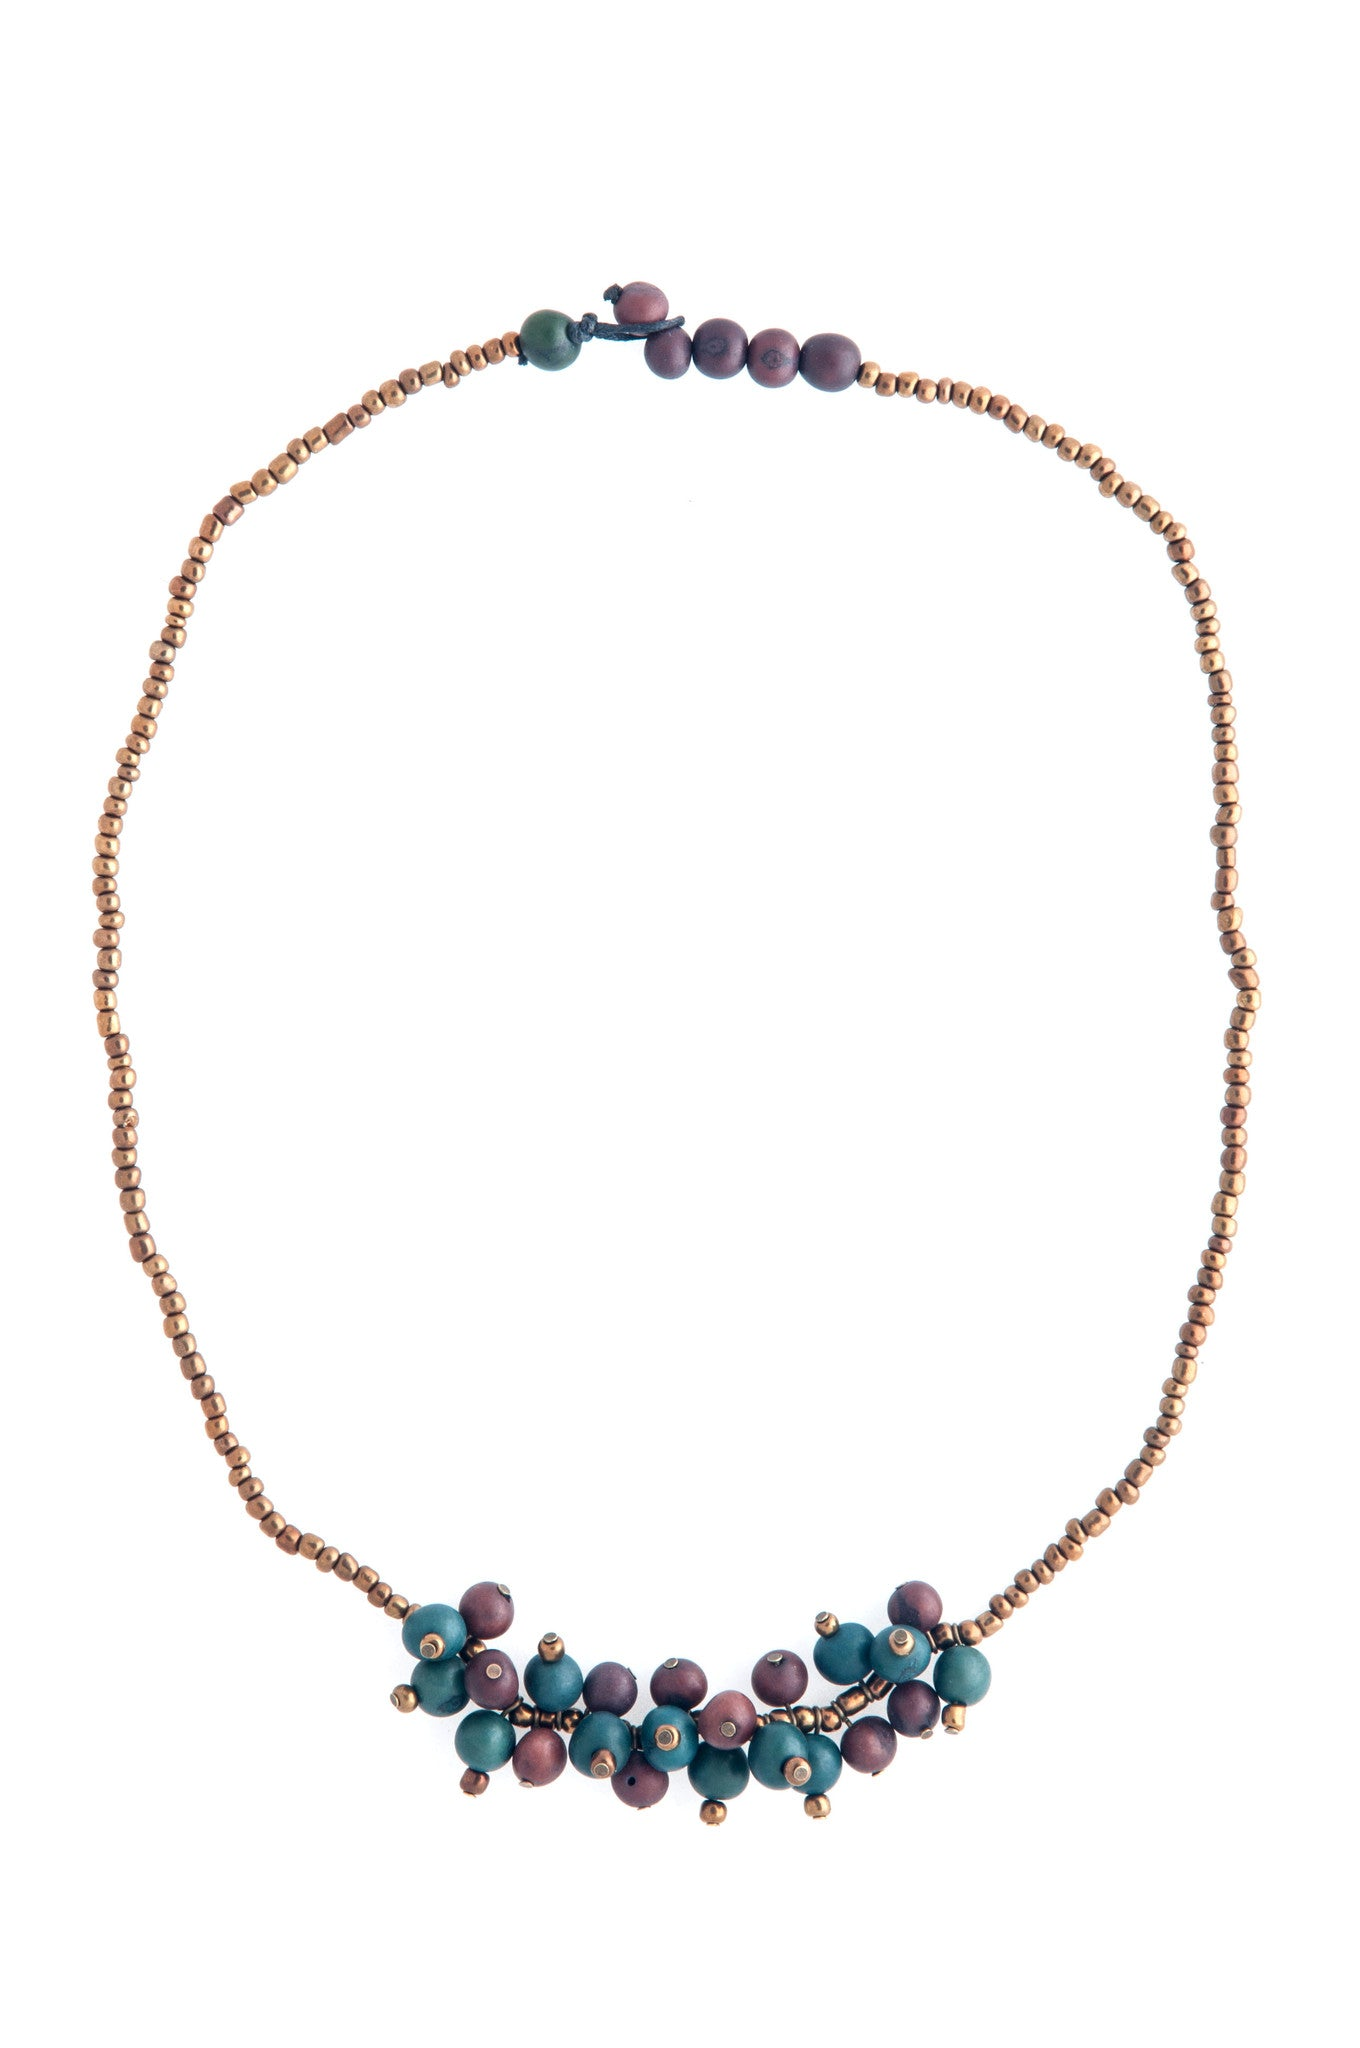 Eco Friendly Acai Seed Uyuni Necklace